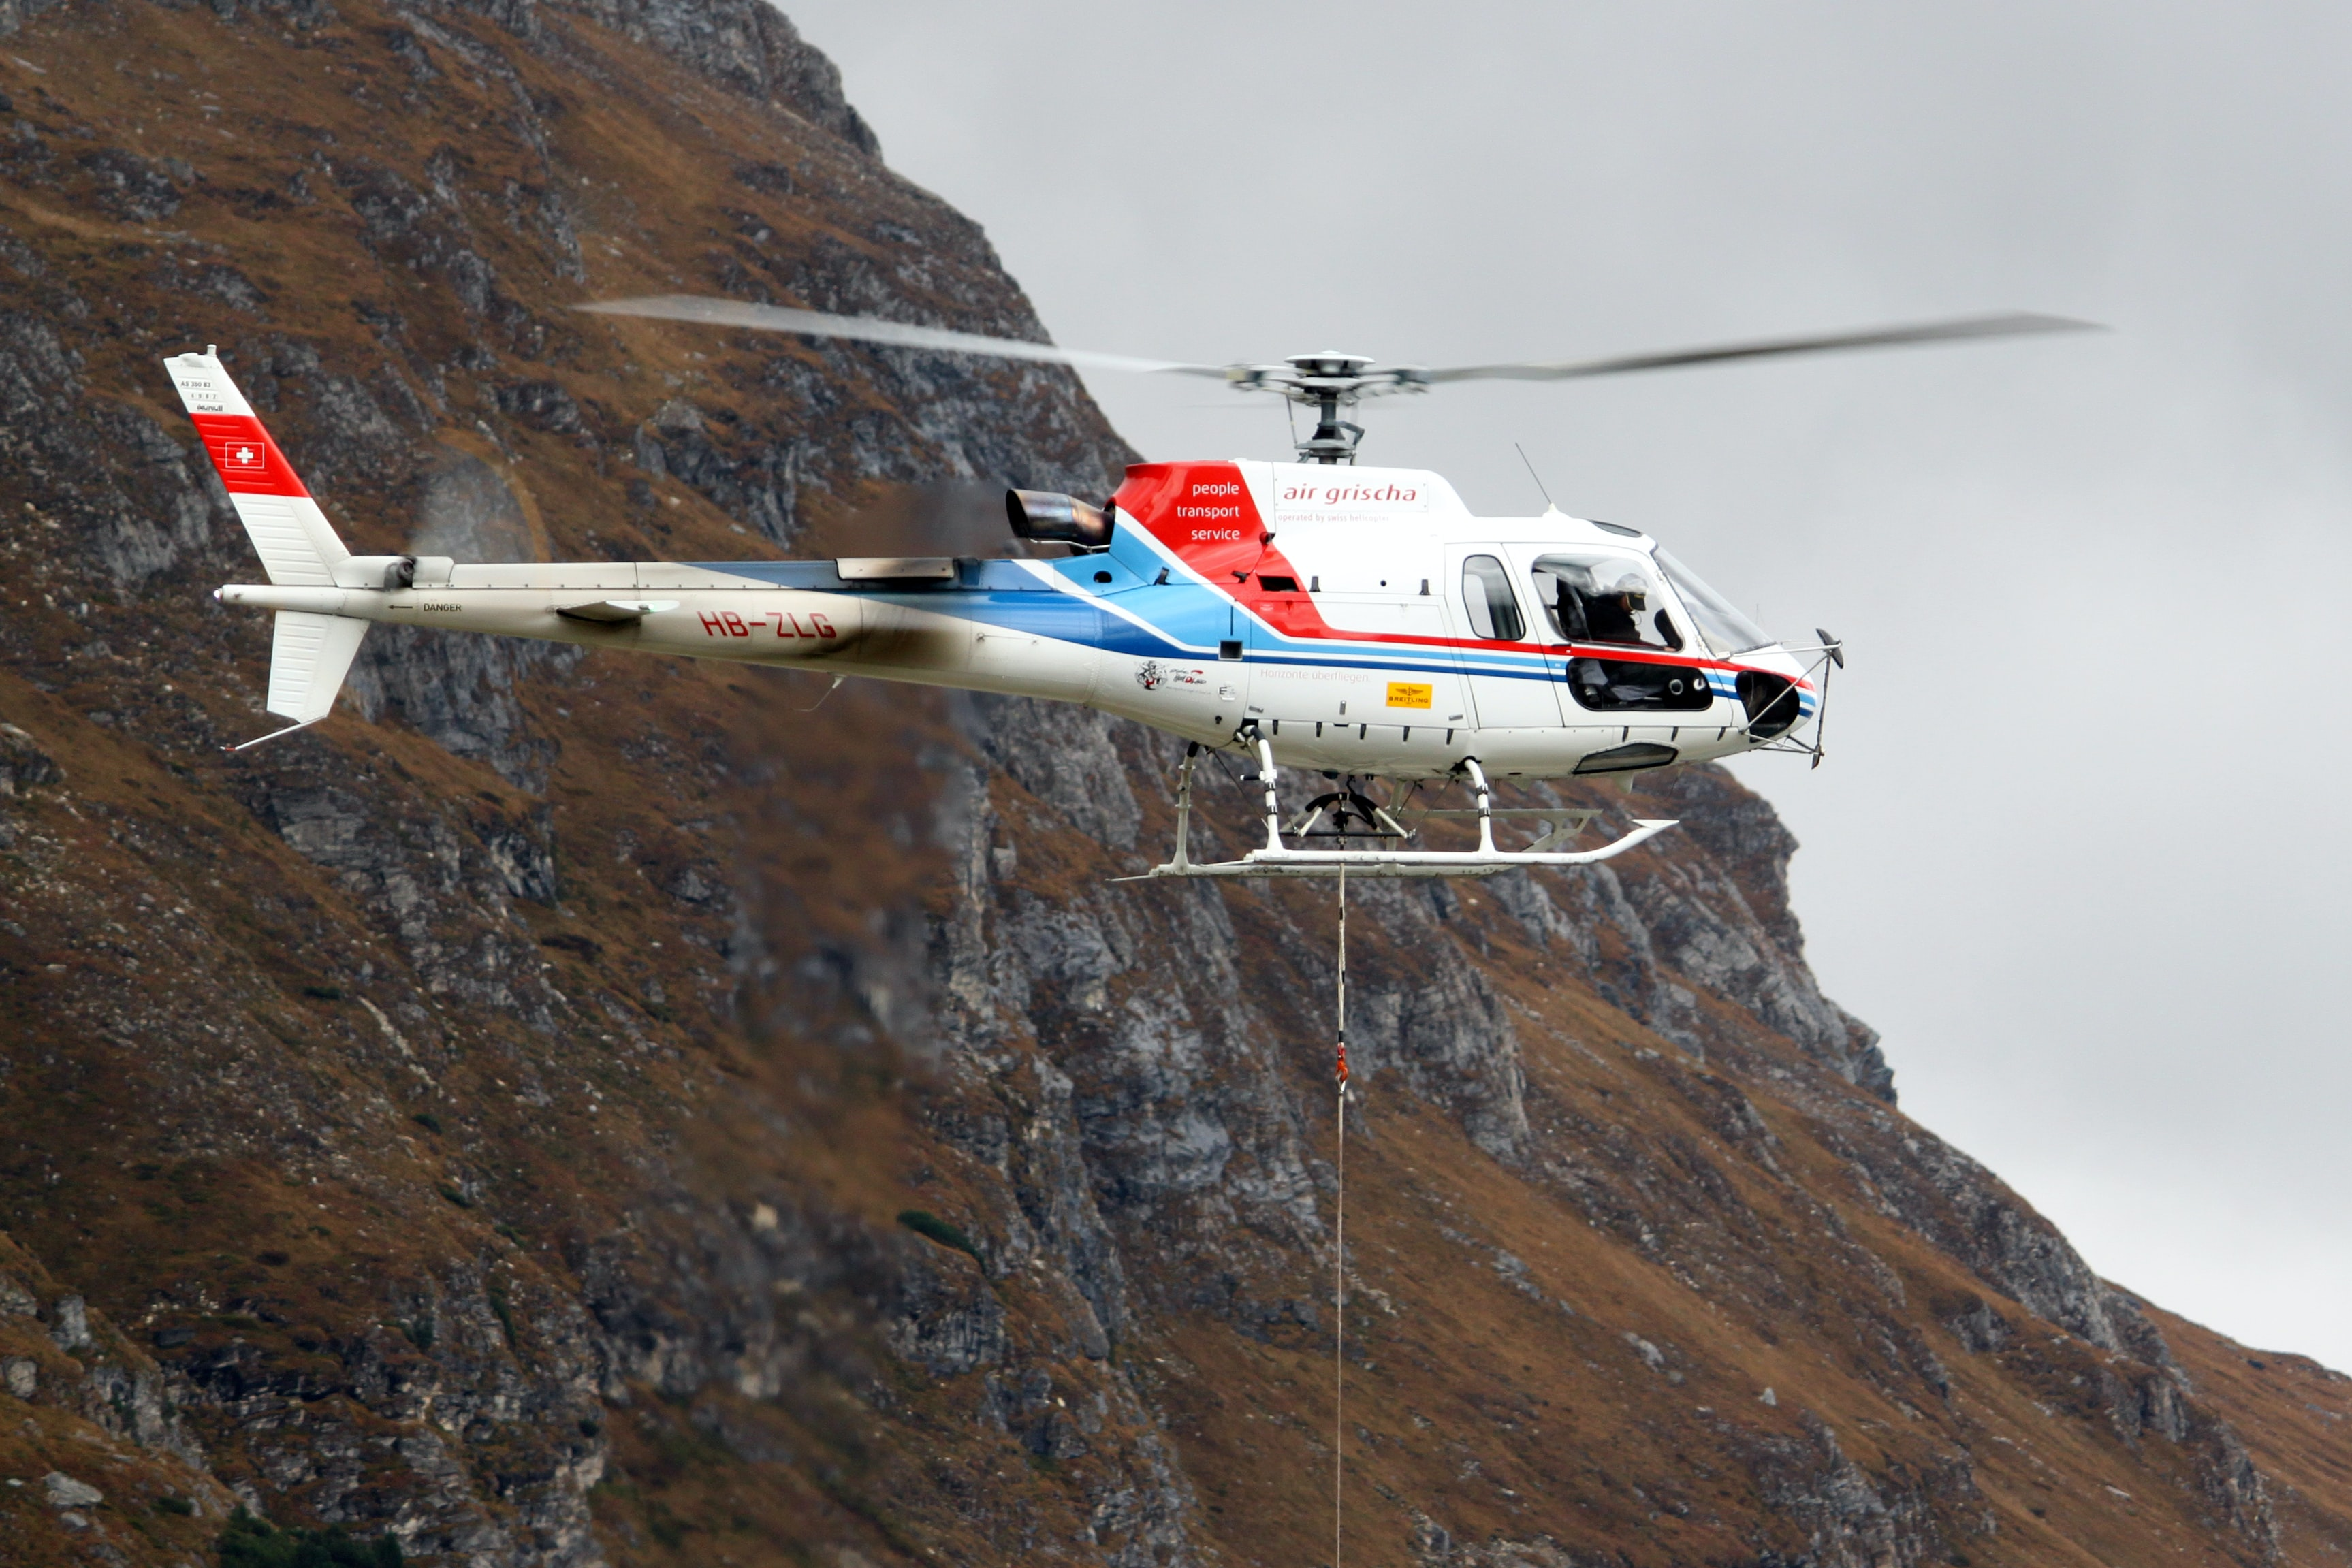 white and red helicopter flying near mountain terrain during daytime